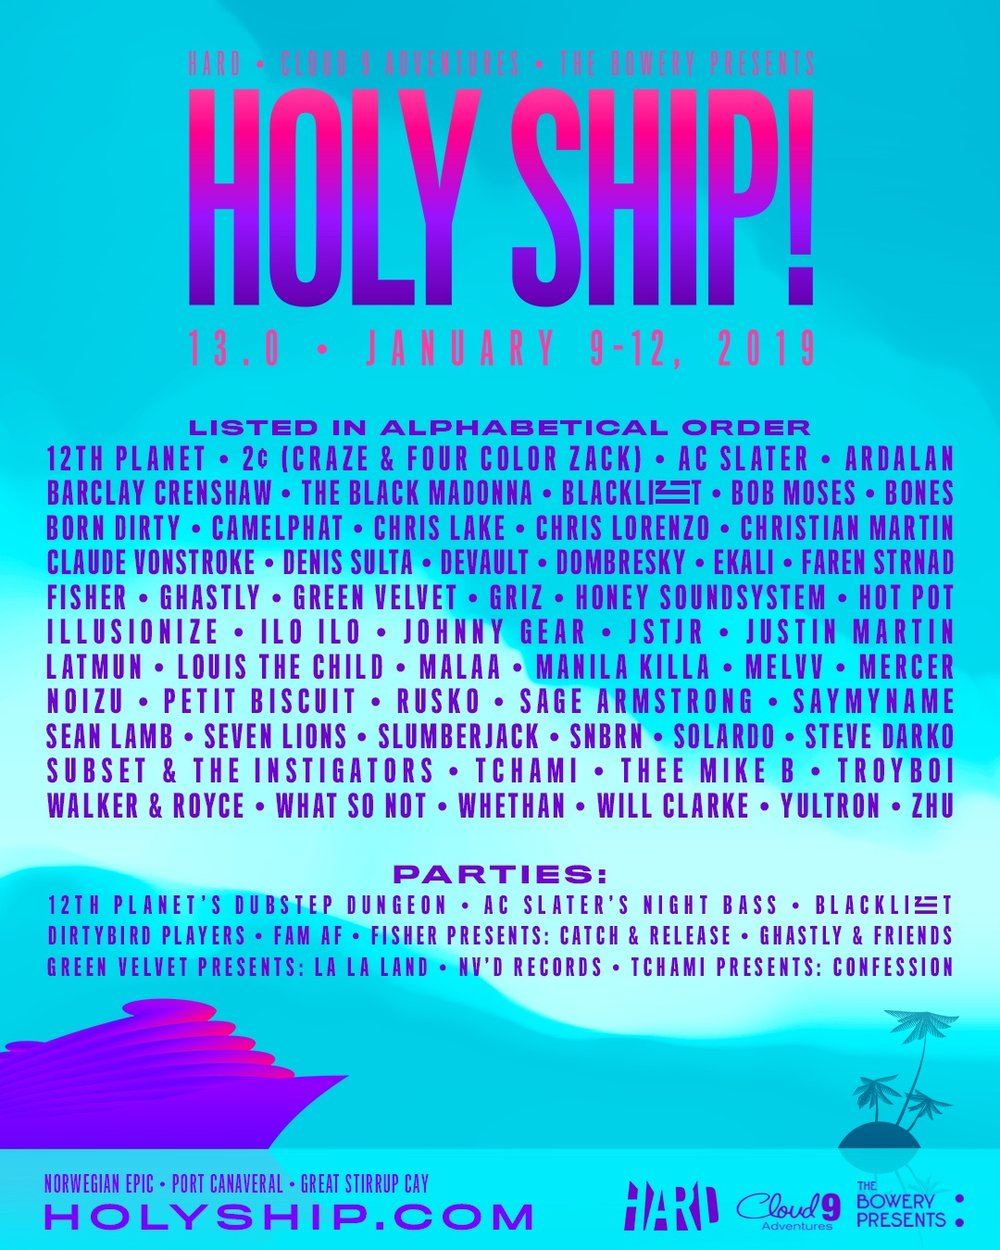 holy_ship_2019_as_lineup_poster_13.0_1080x1350_r02v04.jpg